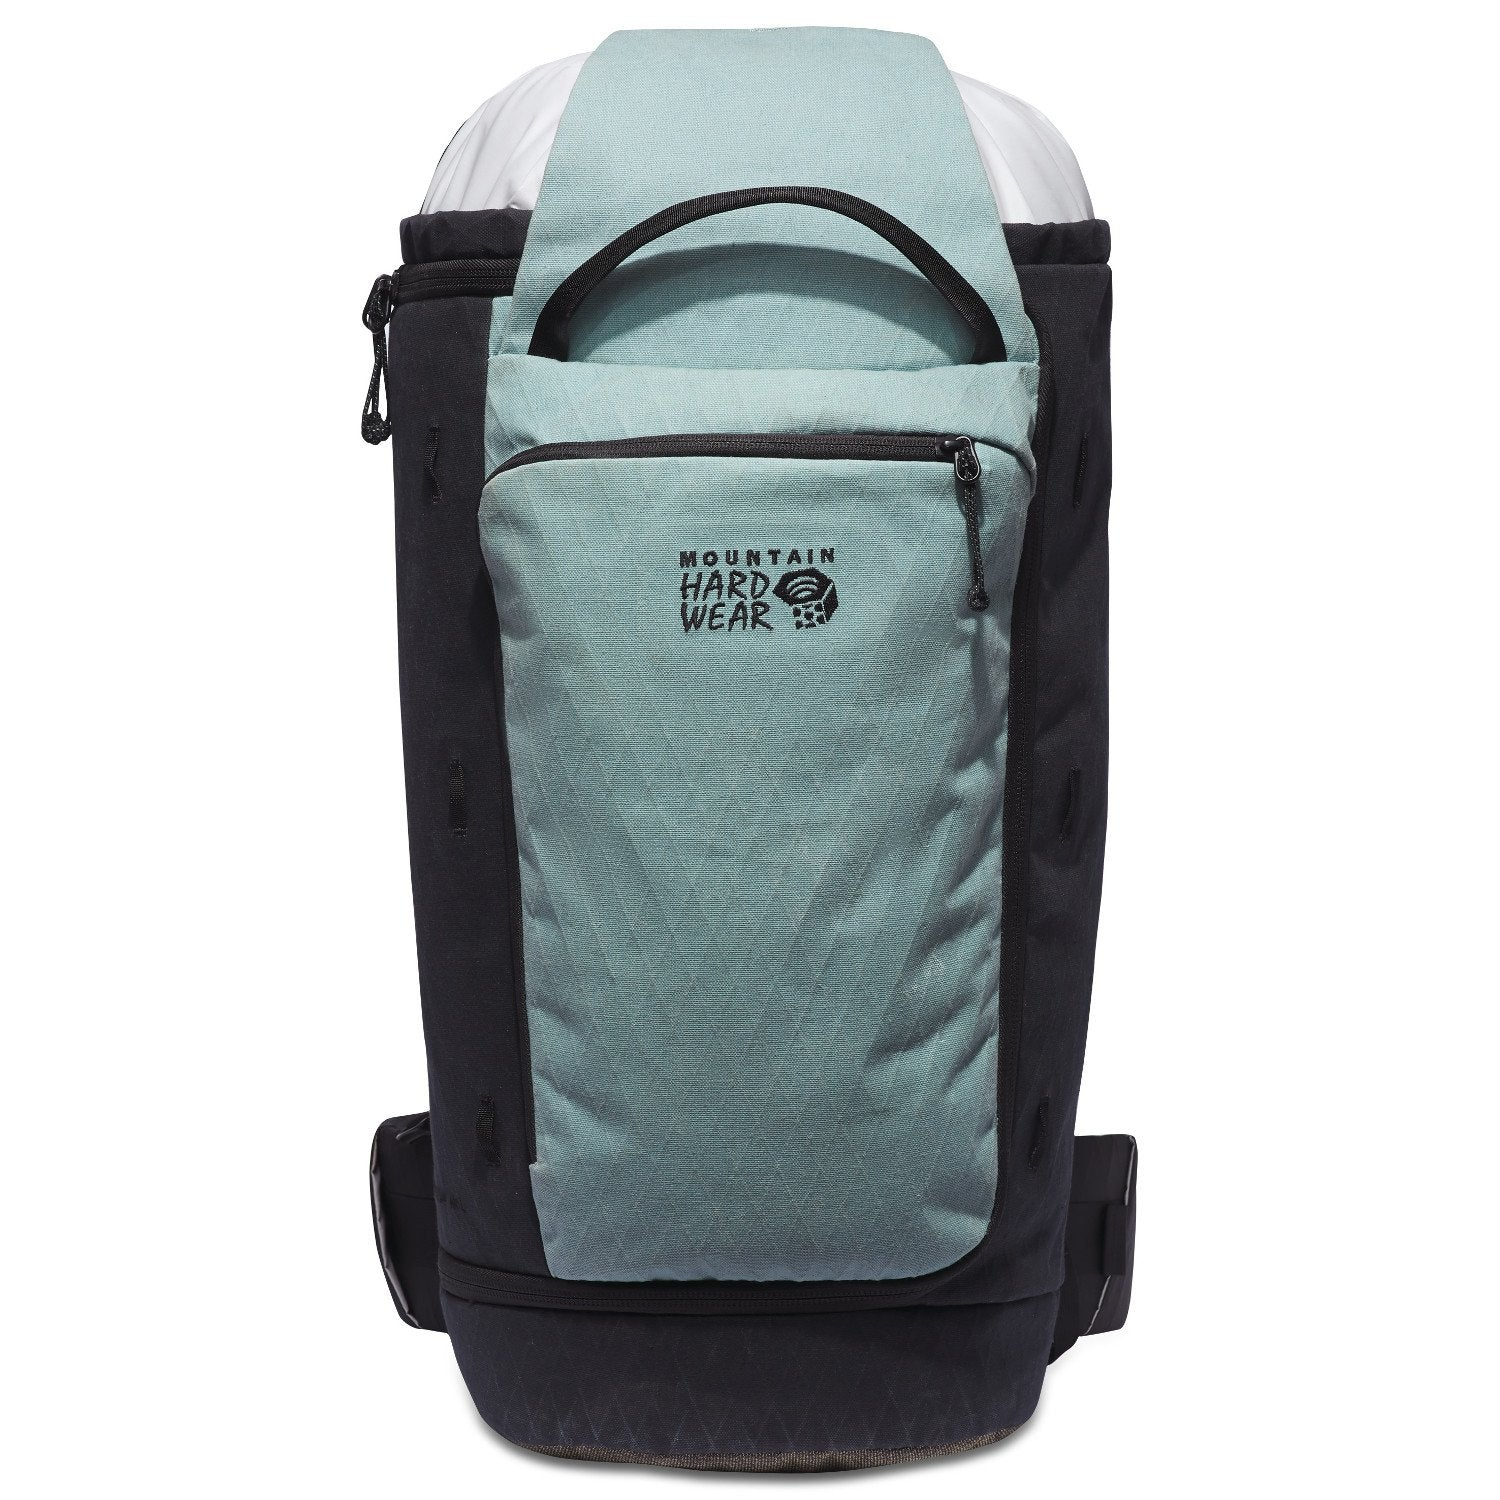 Mountain Hardwear Crag Wagon 45 backpack, front view in Light Blue and black colours